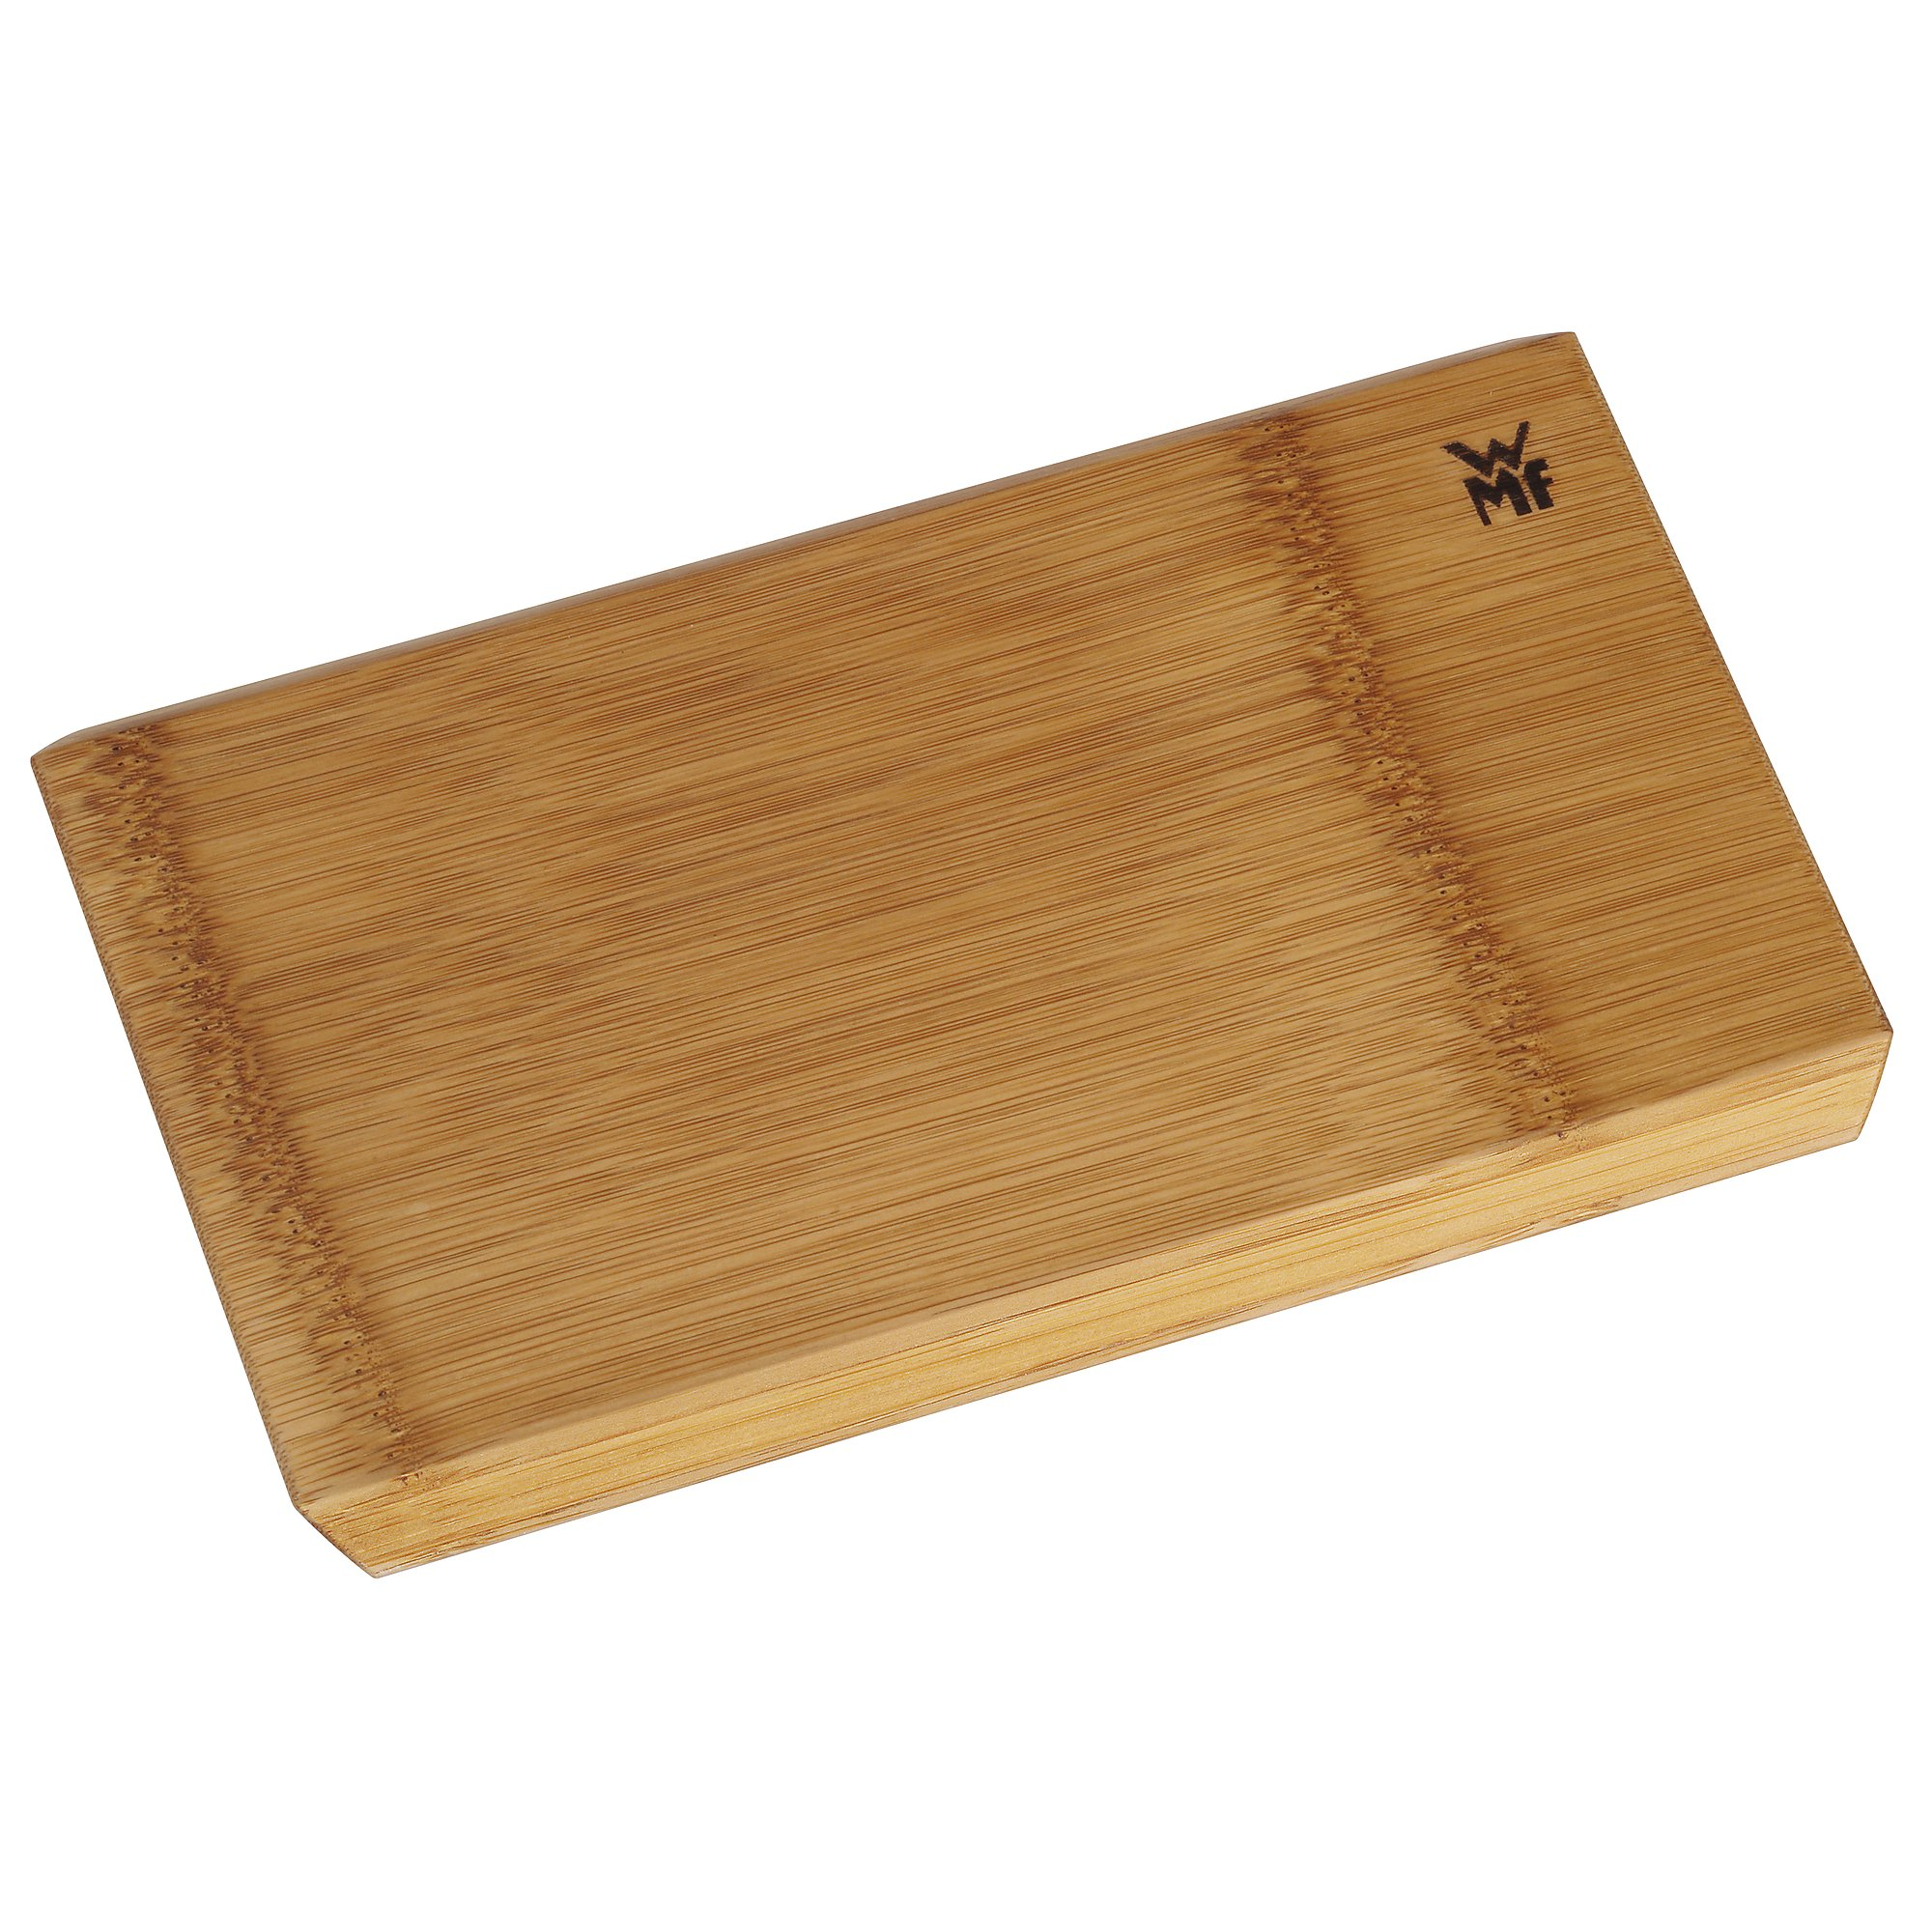 Good Size Cutting Board For Home Kitchen